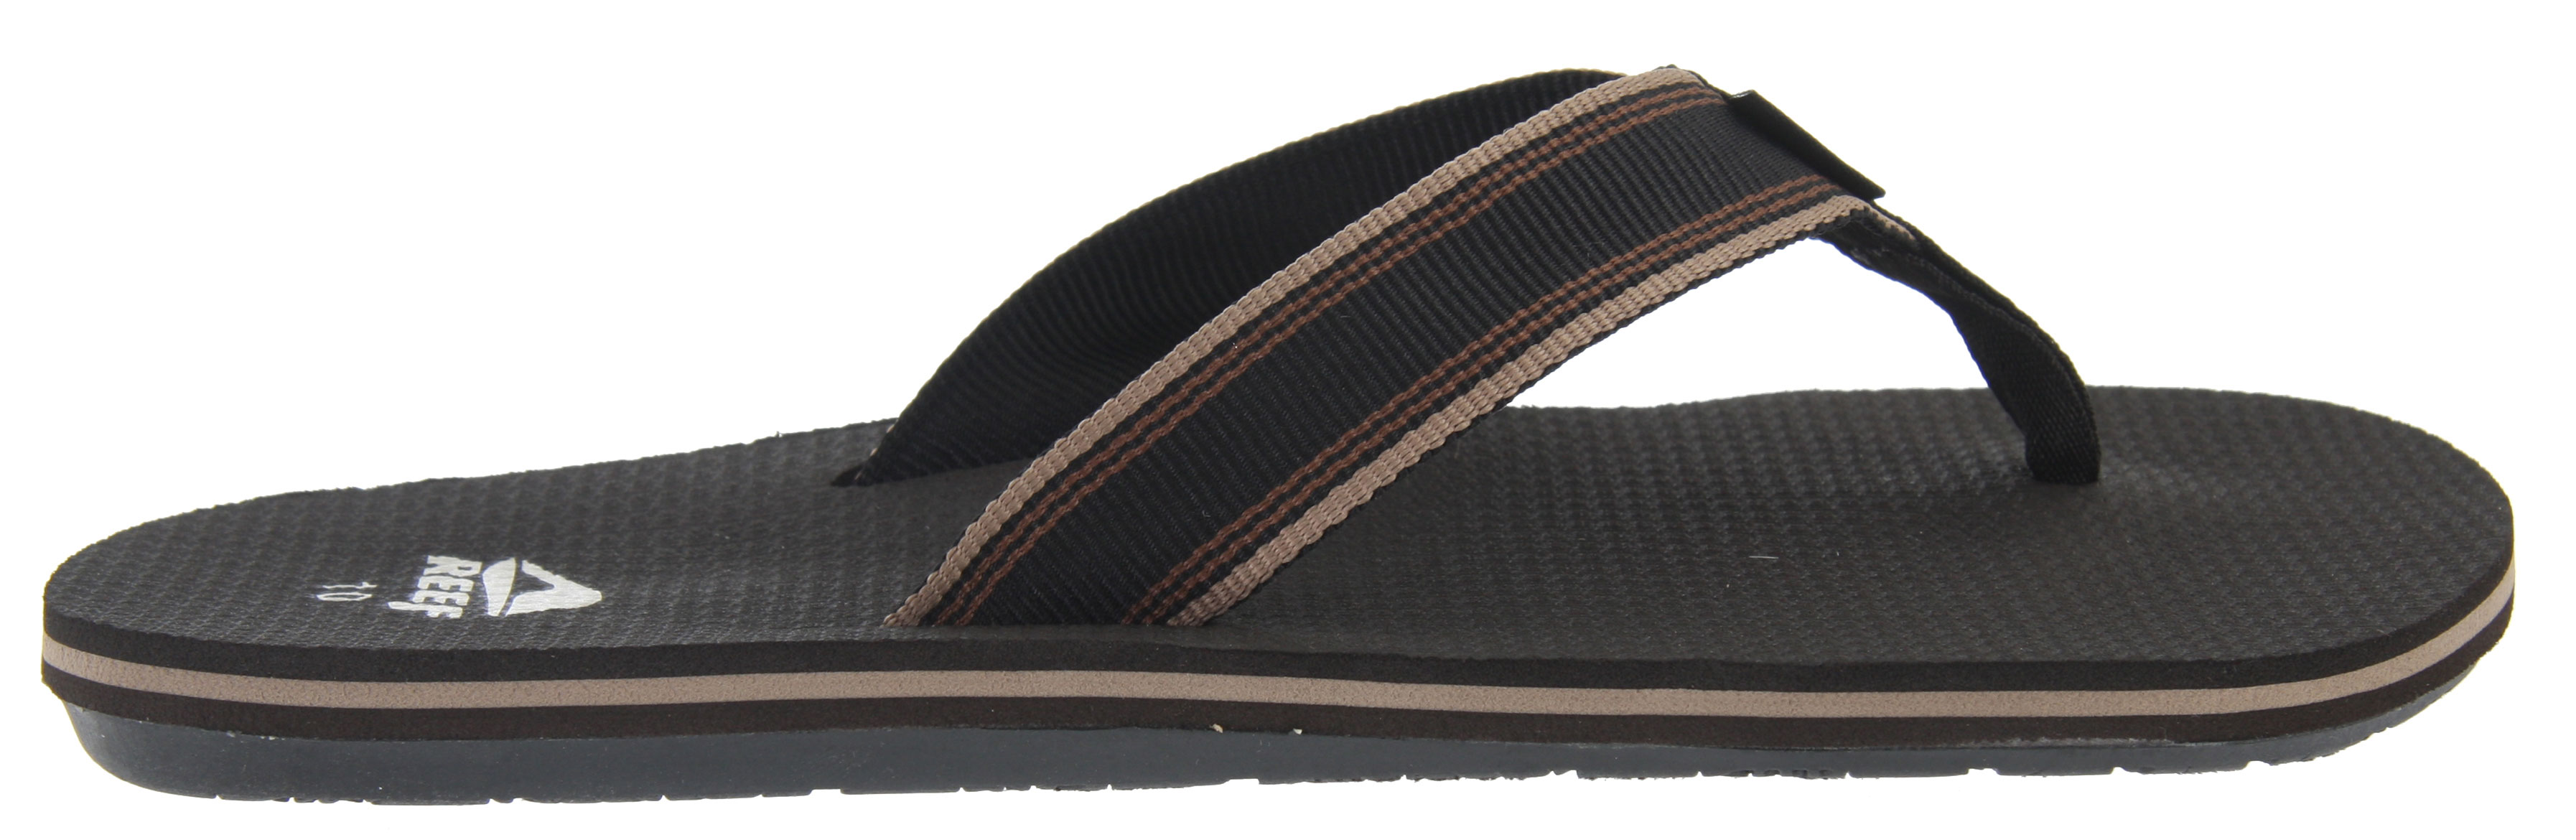 Surf Lets hit the beach with the Reef Forte Sandals. Super comfortable and practical, these Reef Forte Sandals features a soft and grippy footbed. It's perfect for long walks on the beach on a nice summer day. Its contoured footbed allows arch support. Its casual flip flop design featuring multi-colored stripes all on the side of the sandals adds character to an otherwise ordinary sandal. Wear these all summer long and feel comfortable.Key Features of the Reef Forte Sandals: New Super Soft And Grippy Footbed Soft Reef Polyester Woven Strap With Ticking Color Detailing Contoured Footbed With Anatomical Arch Support Grippy Molded Reef Rubber Outsole - $18.95